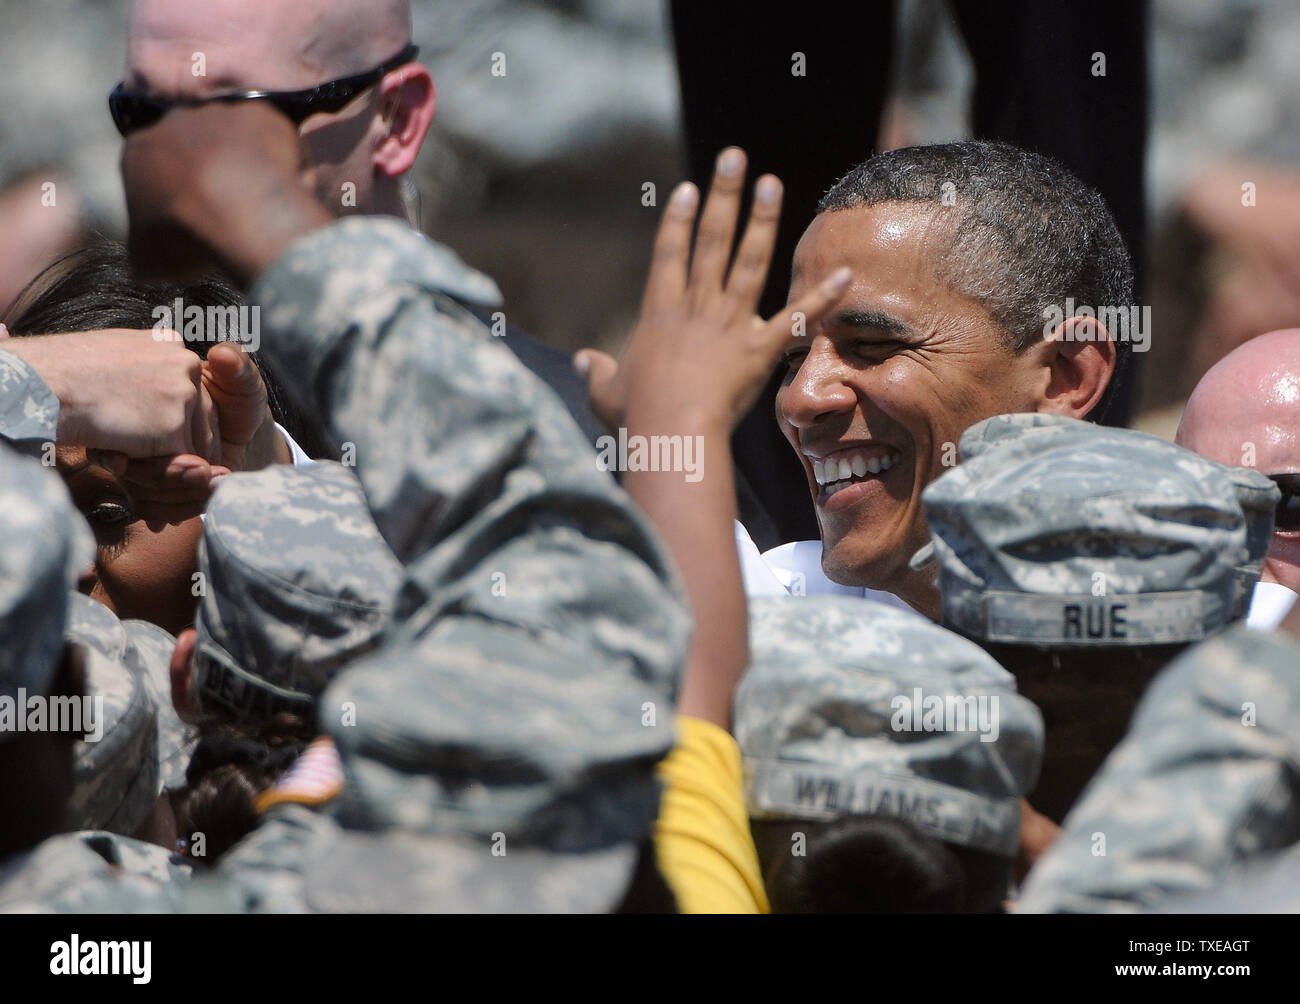 President Barack Obama greets troops at the headquarters for the Army's 3rd Infantry Division in Fort Stewart, Georgia after signing changes to the educational GI Bill on April 27, 2012.   UPI/David Tulis - Stock Image